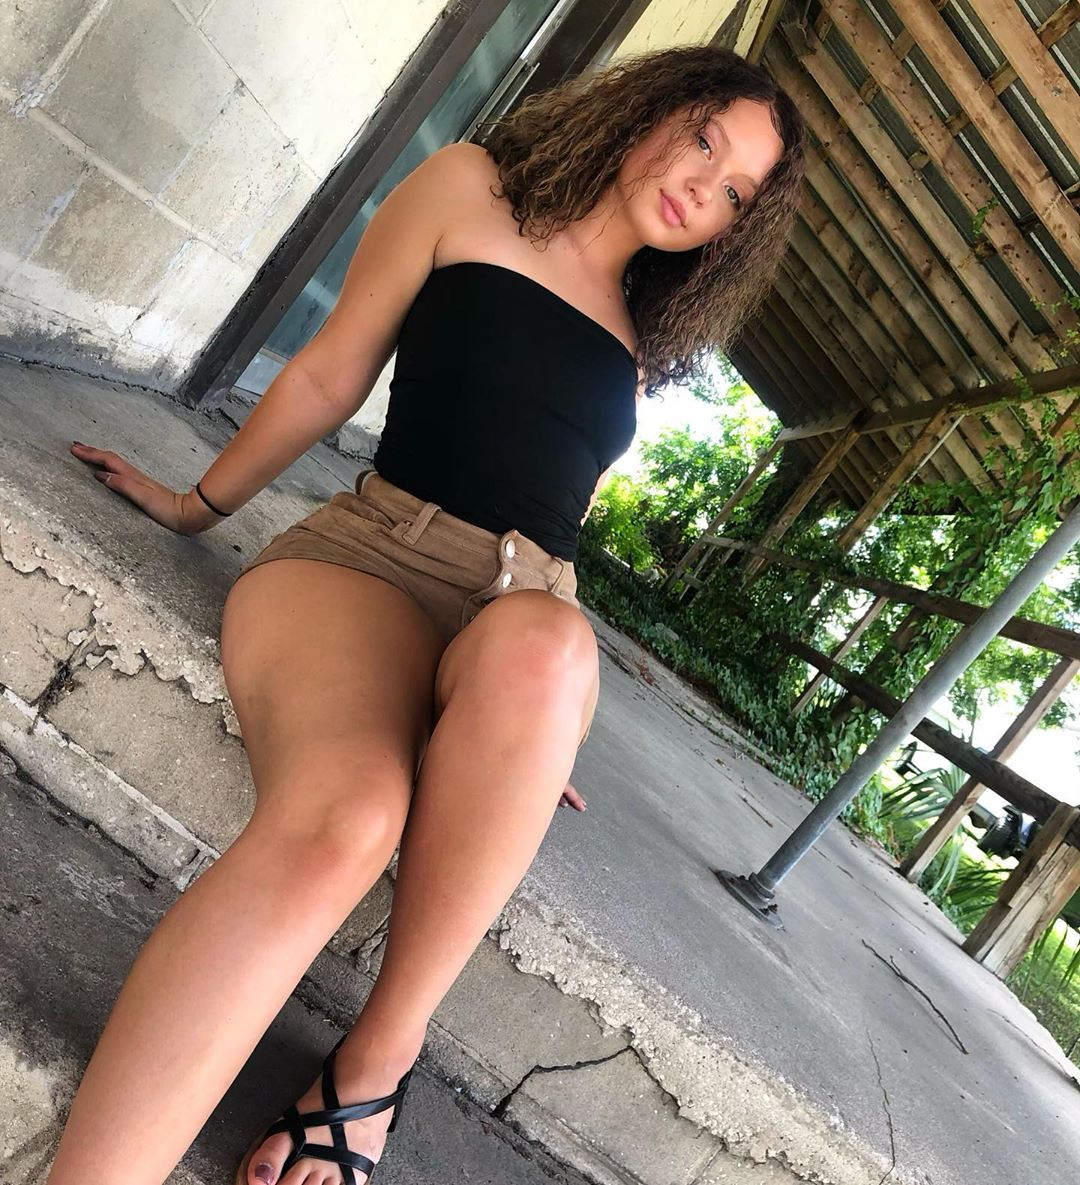 Arielle Lael Nude Onlyfans Leaked! 0039